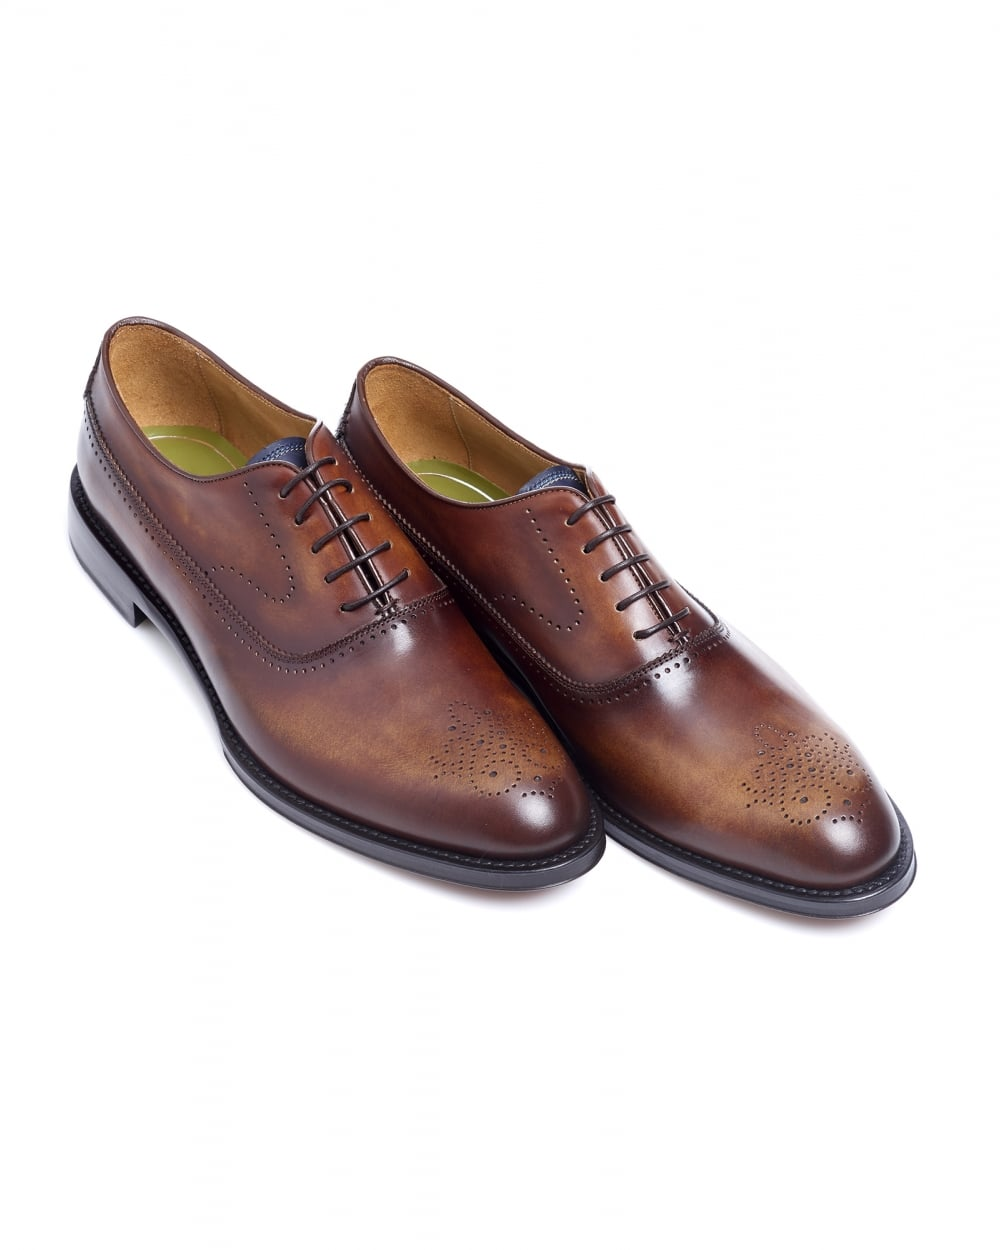 83970fa1513d3 Oliver Sweeney Mens Oristano Antique Brown Leather Brogue Shoes